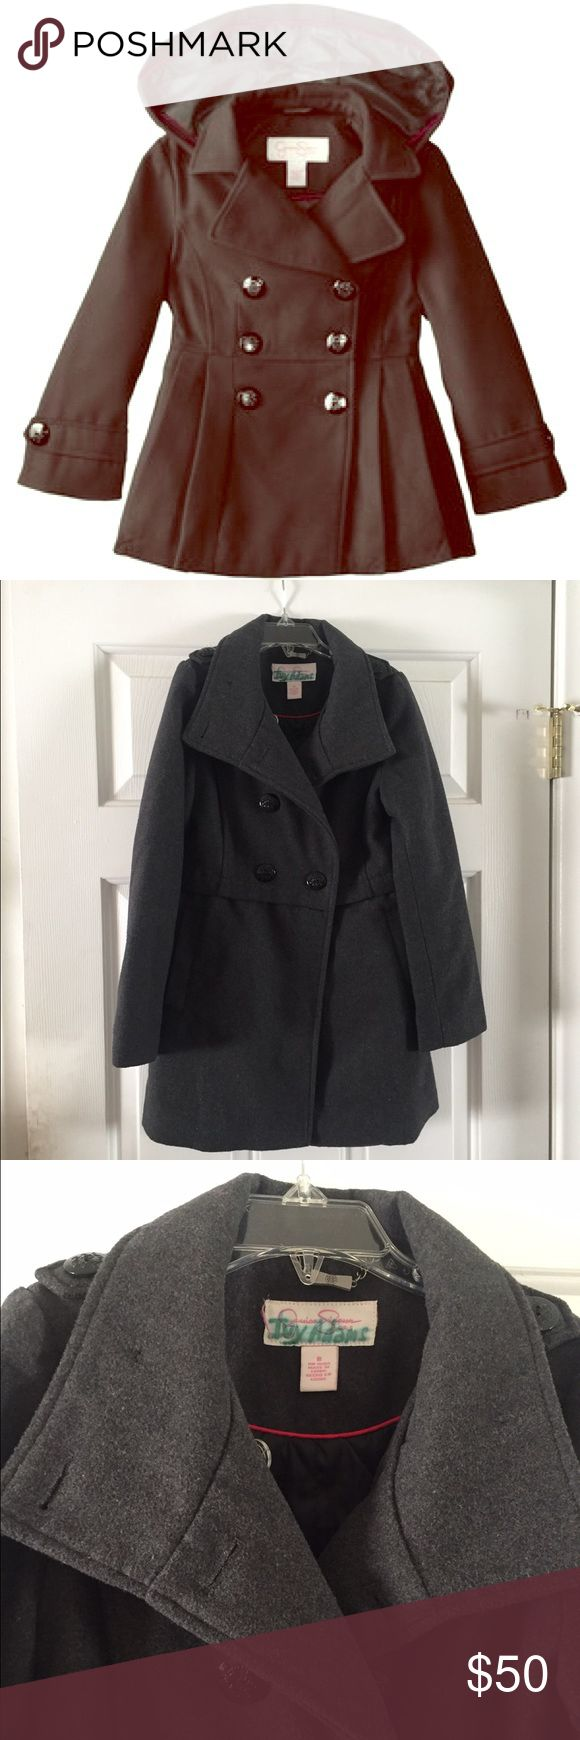 💕Girls Peacoat💕 Adorable girls Peacoat from Jessica Simpson. Double breasted, heather grey with button close. In GREAT condition. living in SoCal my kid doesn't wear a coat much and grows out of then quicker then I'd like. Does not come with a hood. Accepting offers (use button) No trades ❄️ Jessica Simpson Jackets & Coats Pea Coats